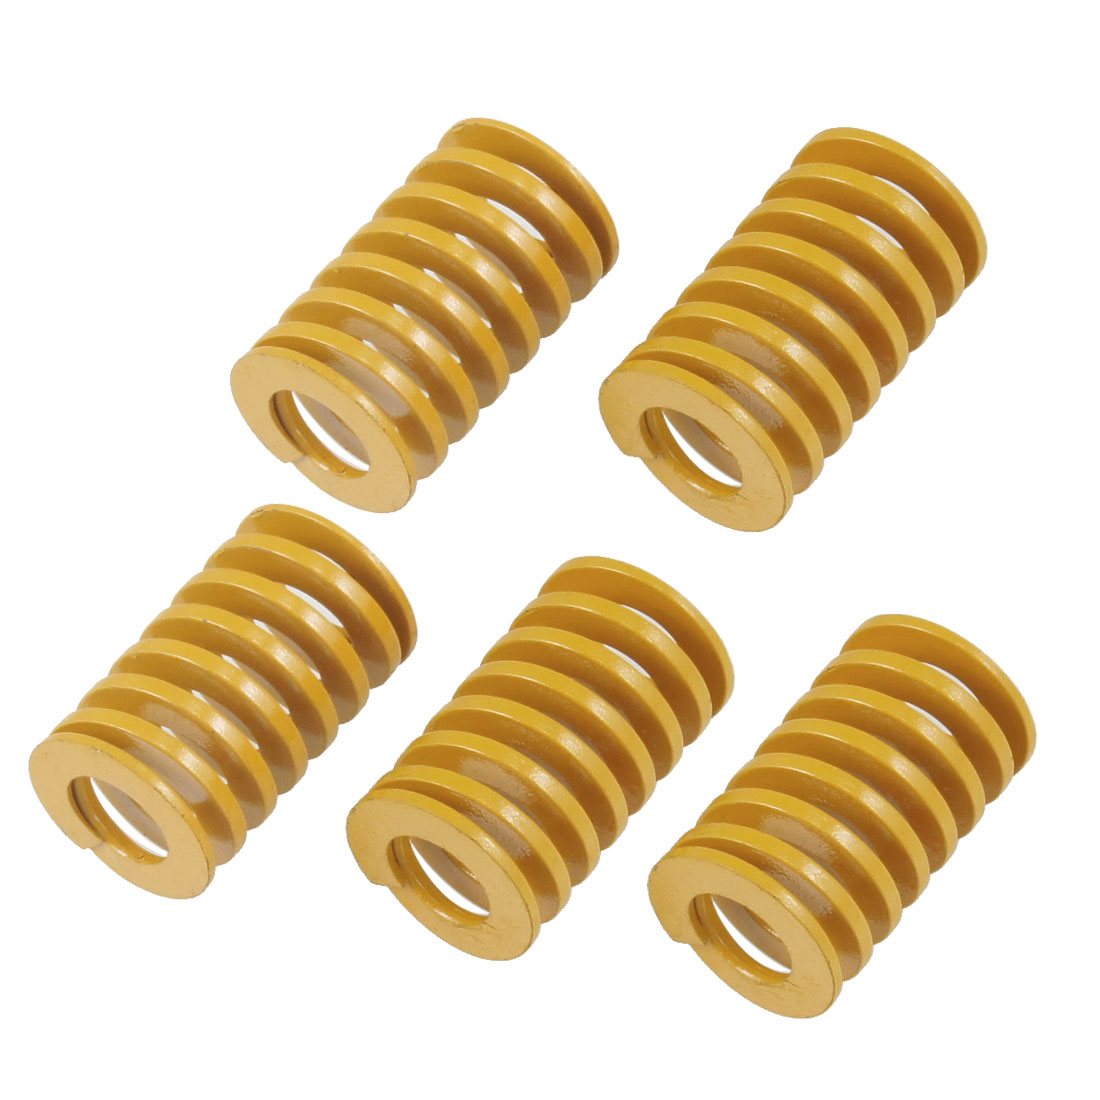 16mm x 8.5mm x 25mm Tubular Section Mold Mould Die Spring Orange 5 Pcs